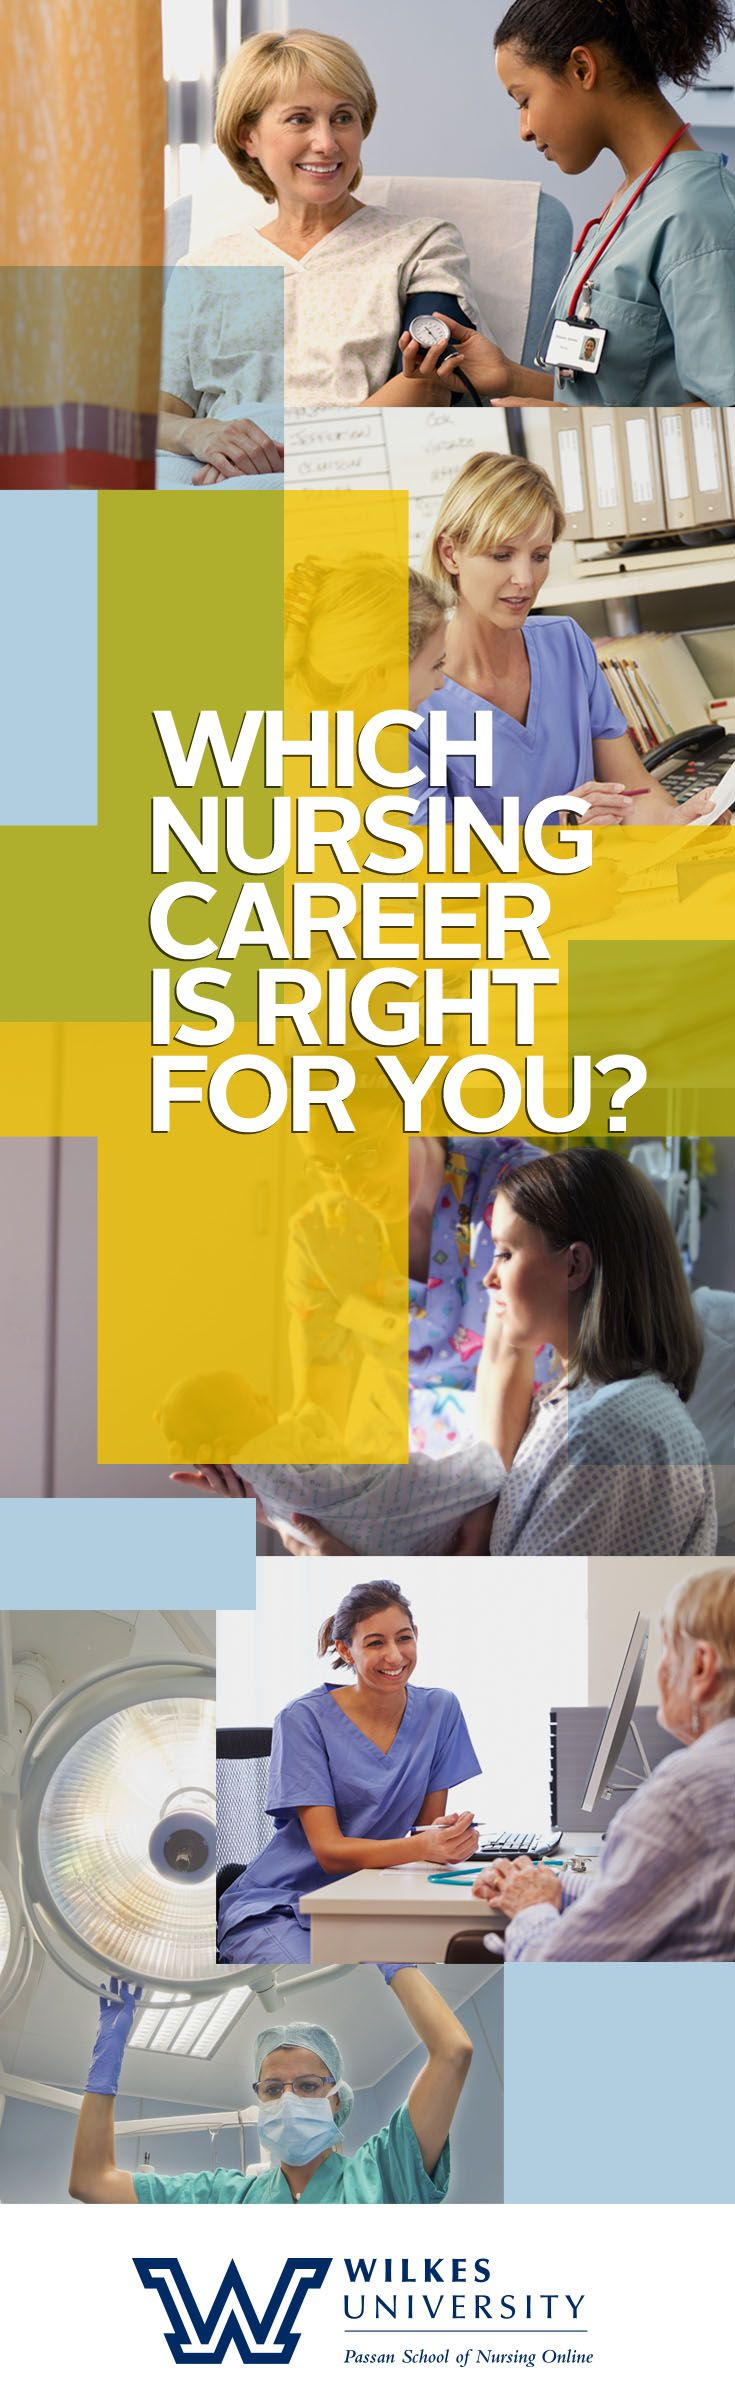 Choose your nursing career path with Wilkes